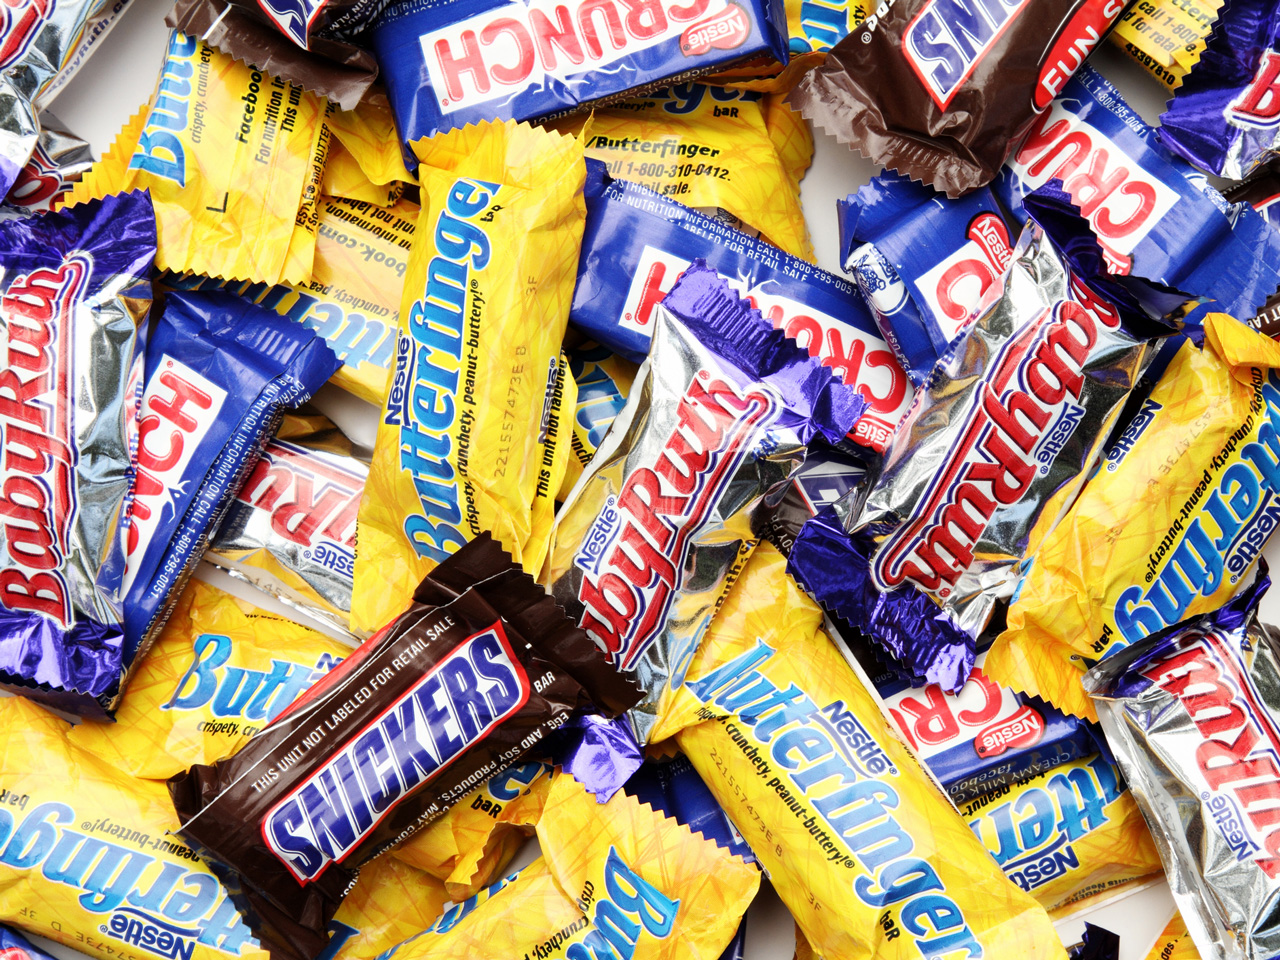 The ?worst Halloween candy? fights back on social media